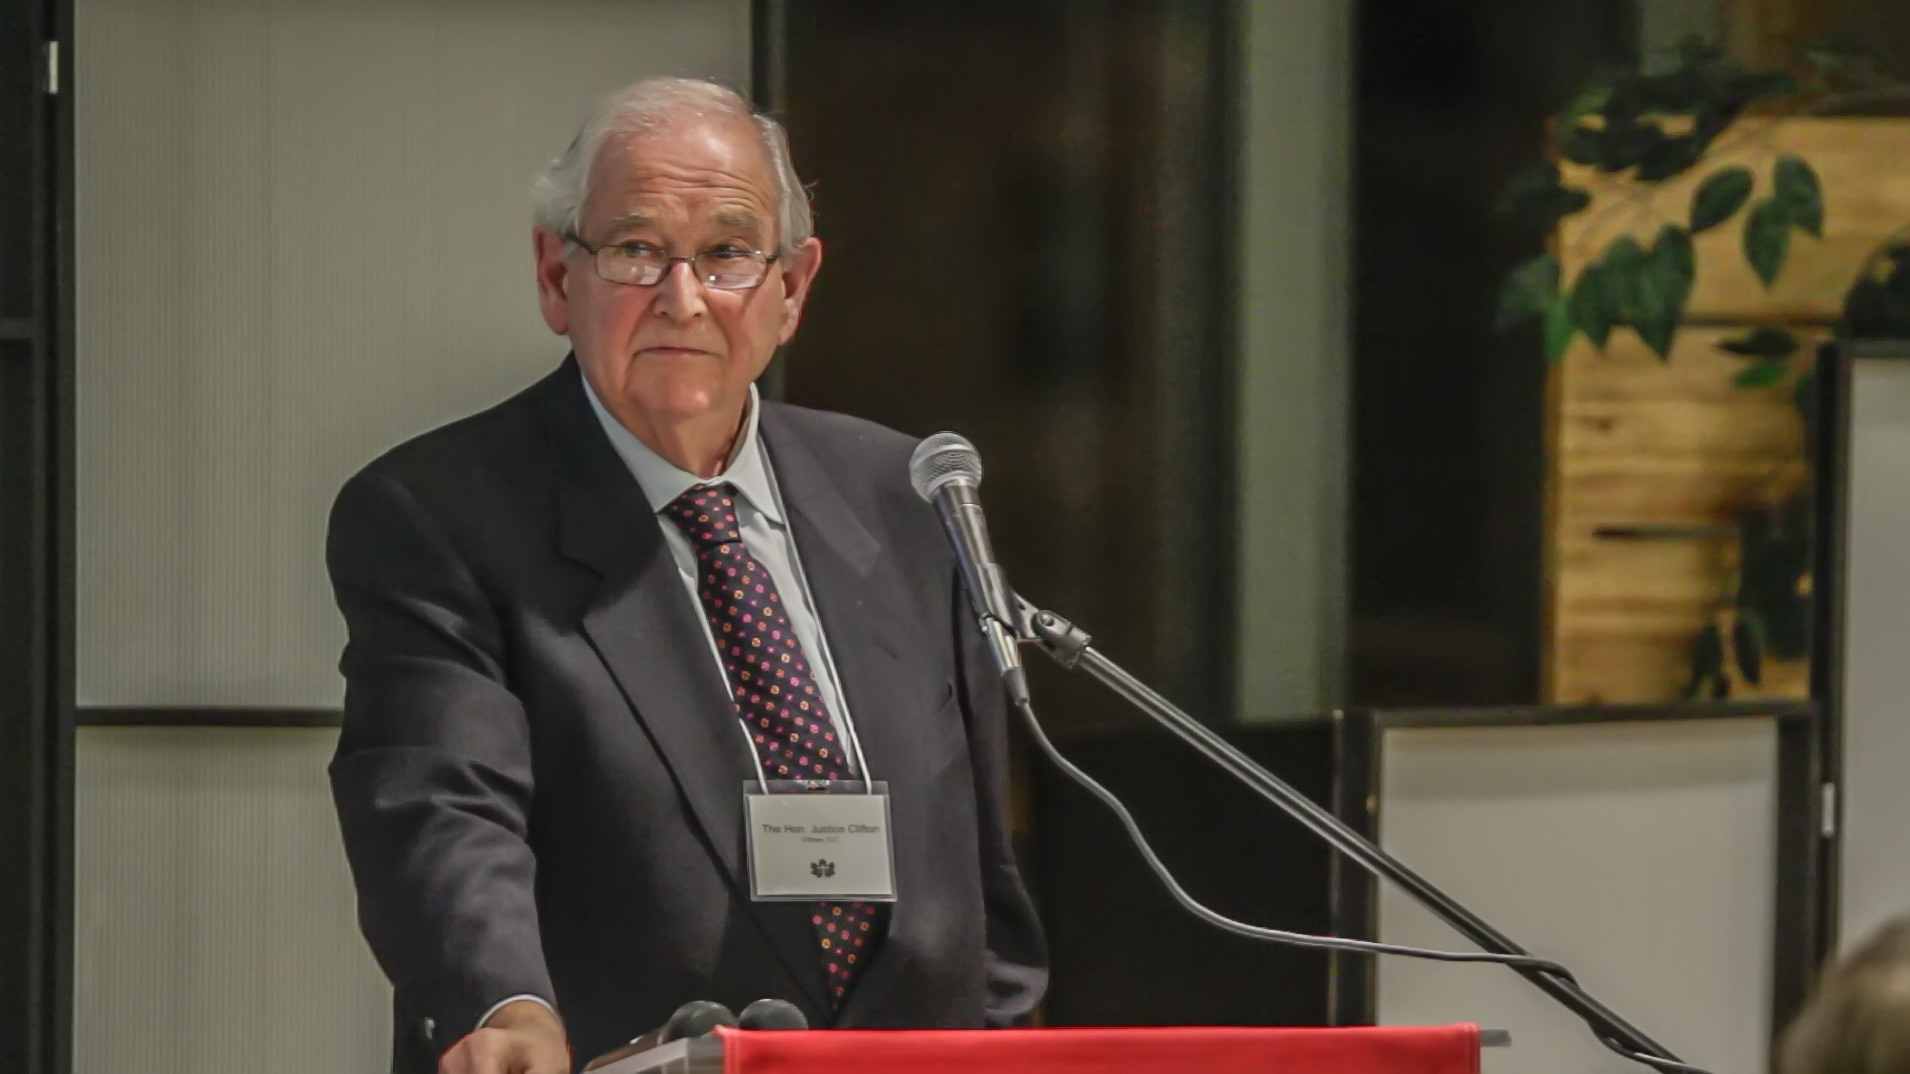 The Honourable Clifton D. O'Brien, Q.C., the keynote speaker at the Celebration Banquet.